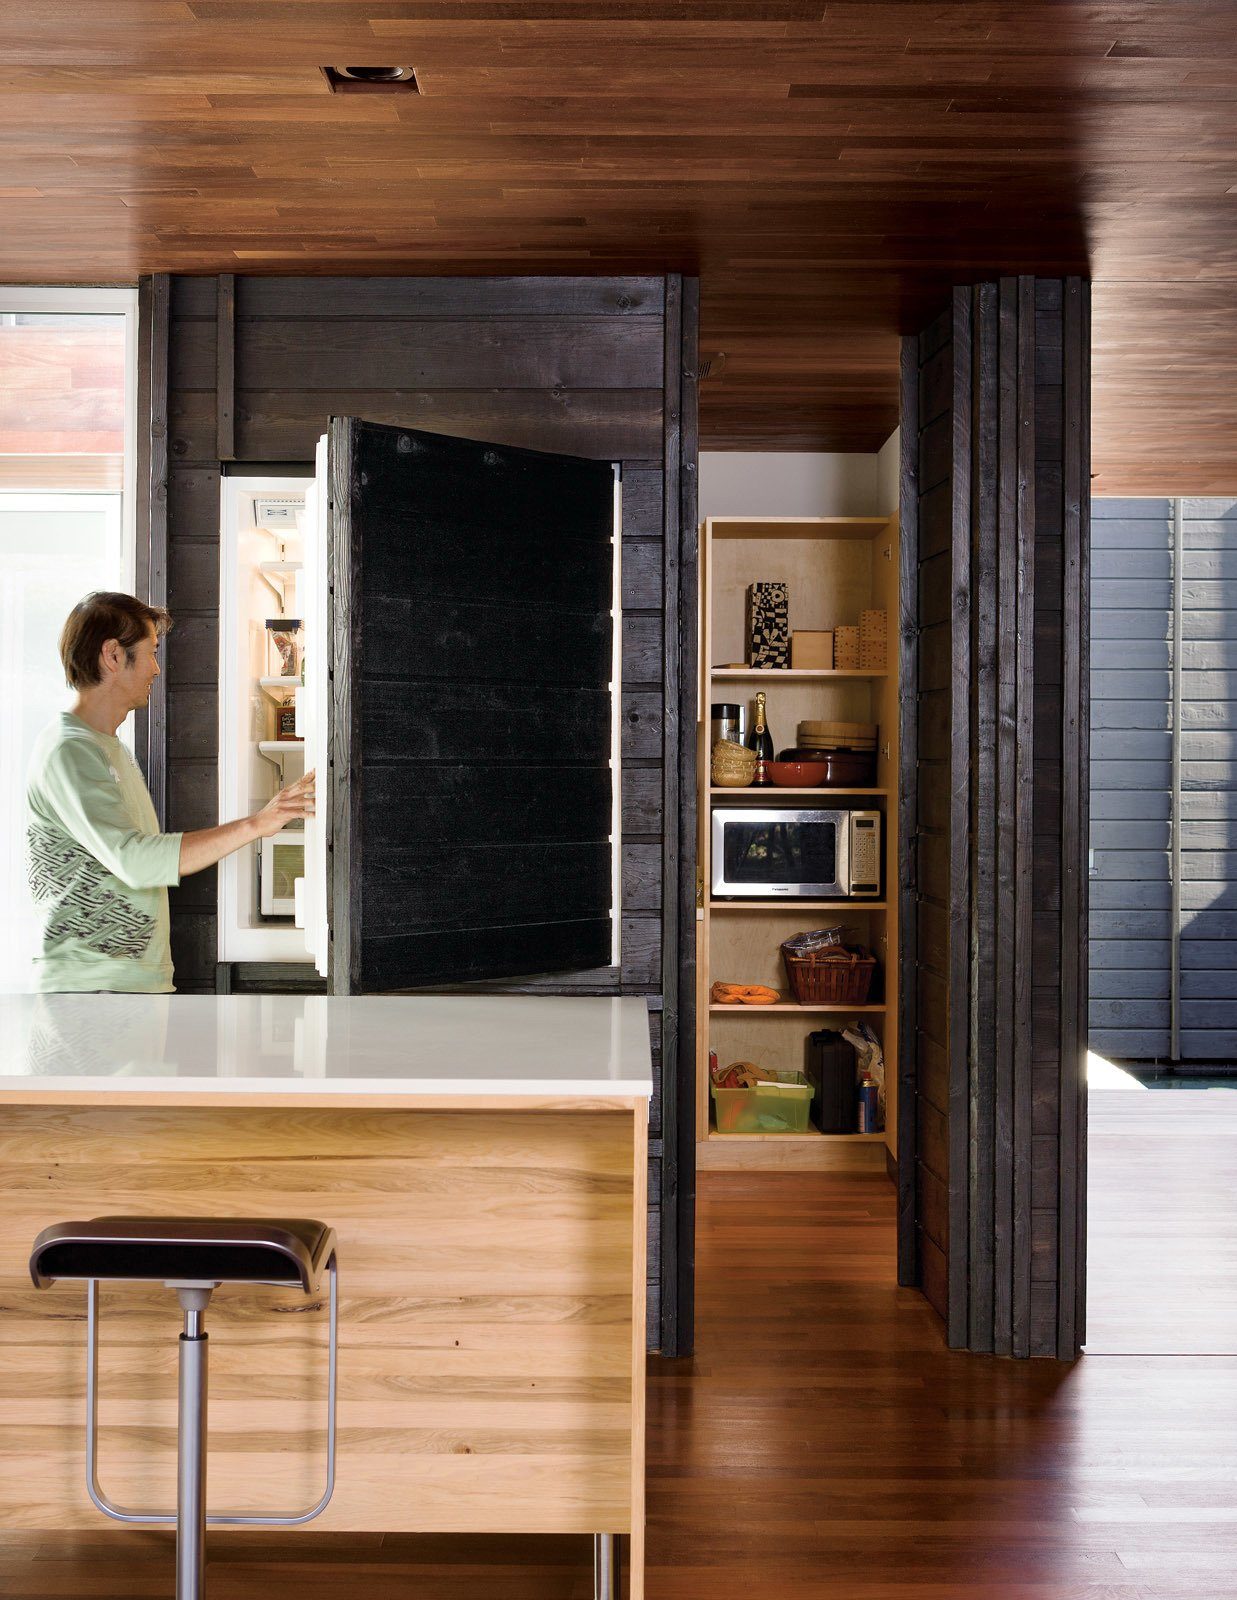 Kitchen, Wood Cabinet, Refrigerator, Ceiling Lighting, White Cabinet, Recessed Lighting, and Medium Hardwood Floor While most of the ground level is given over to the large open living and dining area, it also includes a small pantry, office, and Japanese bathroom. An integrated Sub-Zero refrigerator is almost unnoticeable behind its charred cedar cladding.  Hail Cedar: 7 Houses that Make Use of Cedar Wood by Diana Budds from An Atypical Modern Home in Southern California